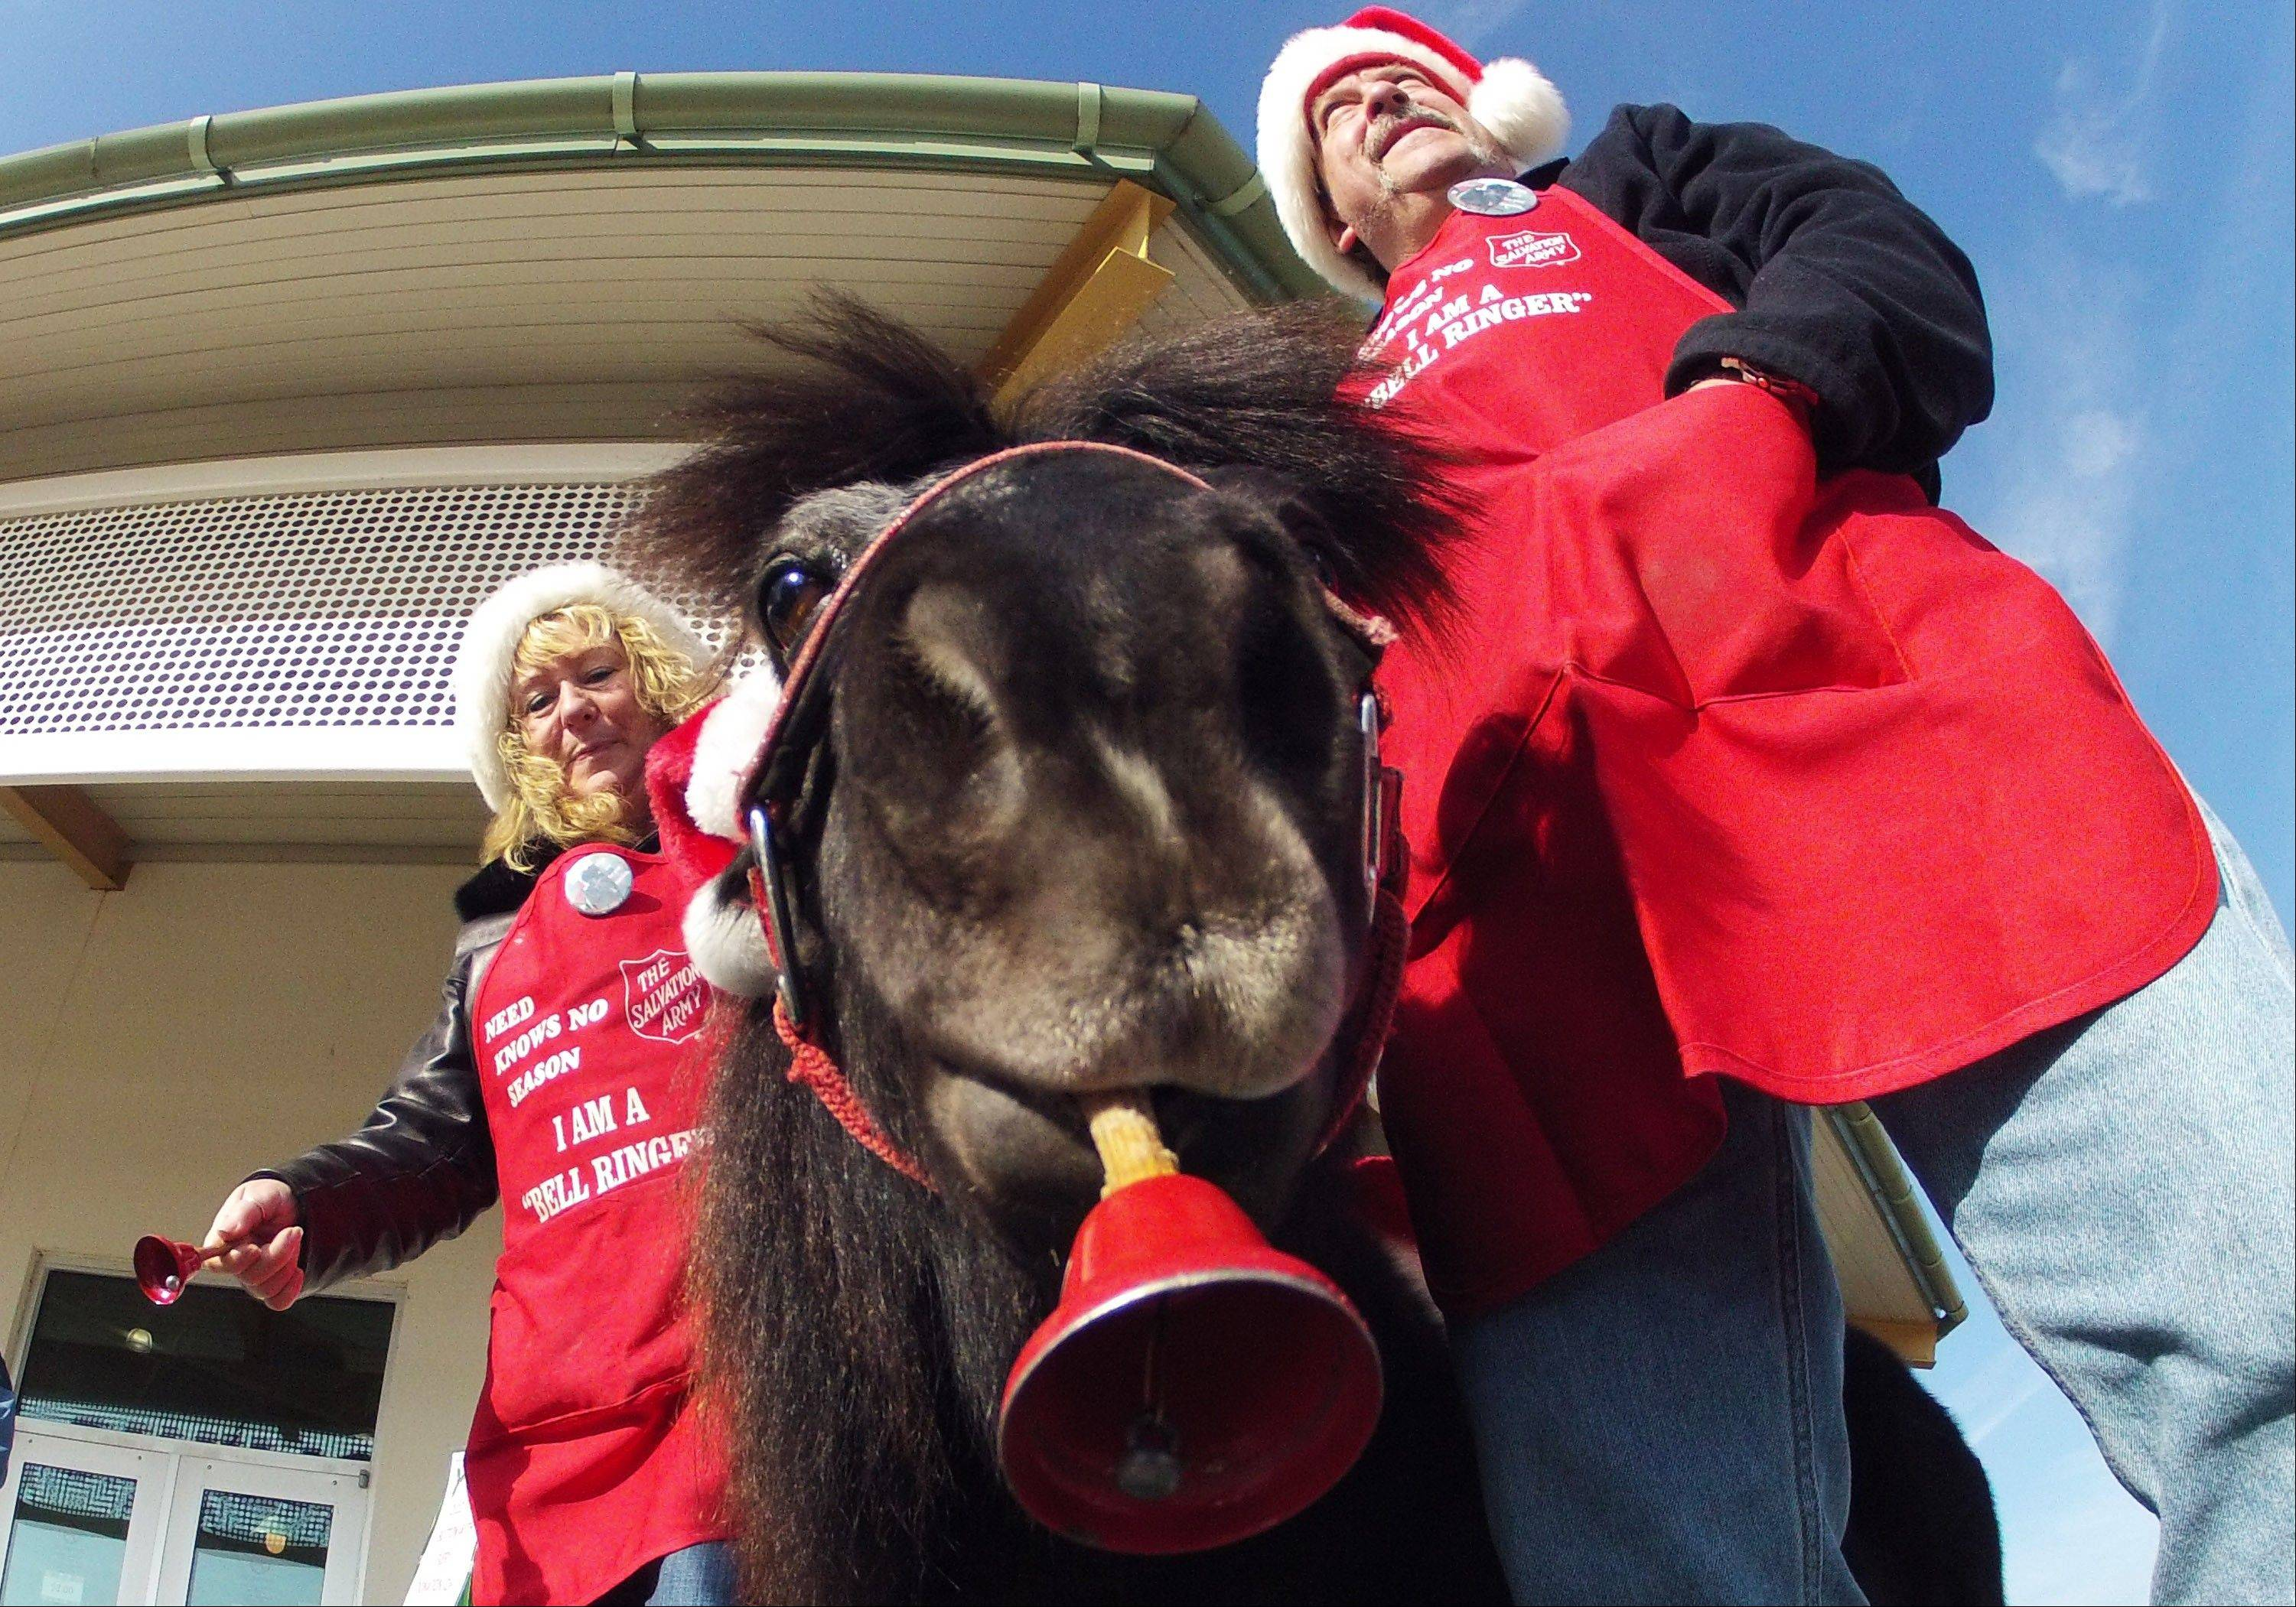 Tinker, a miniature horse, rings a red bell for the Salvation Army outside a craft fair Nov. 17 in West Bend, Wis., with his owners, Carol and Joe Takacs.